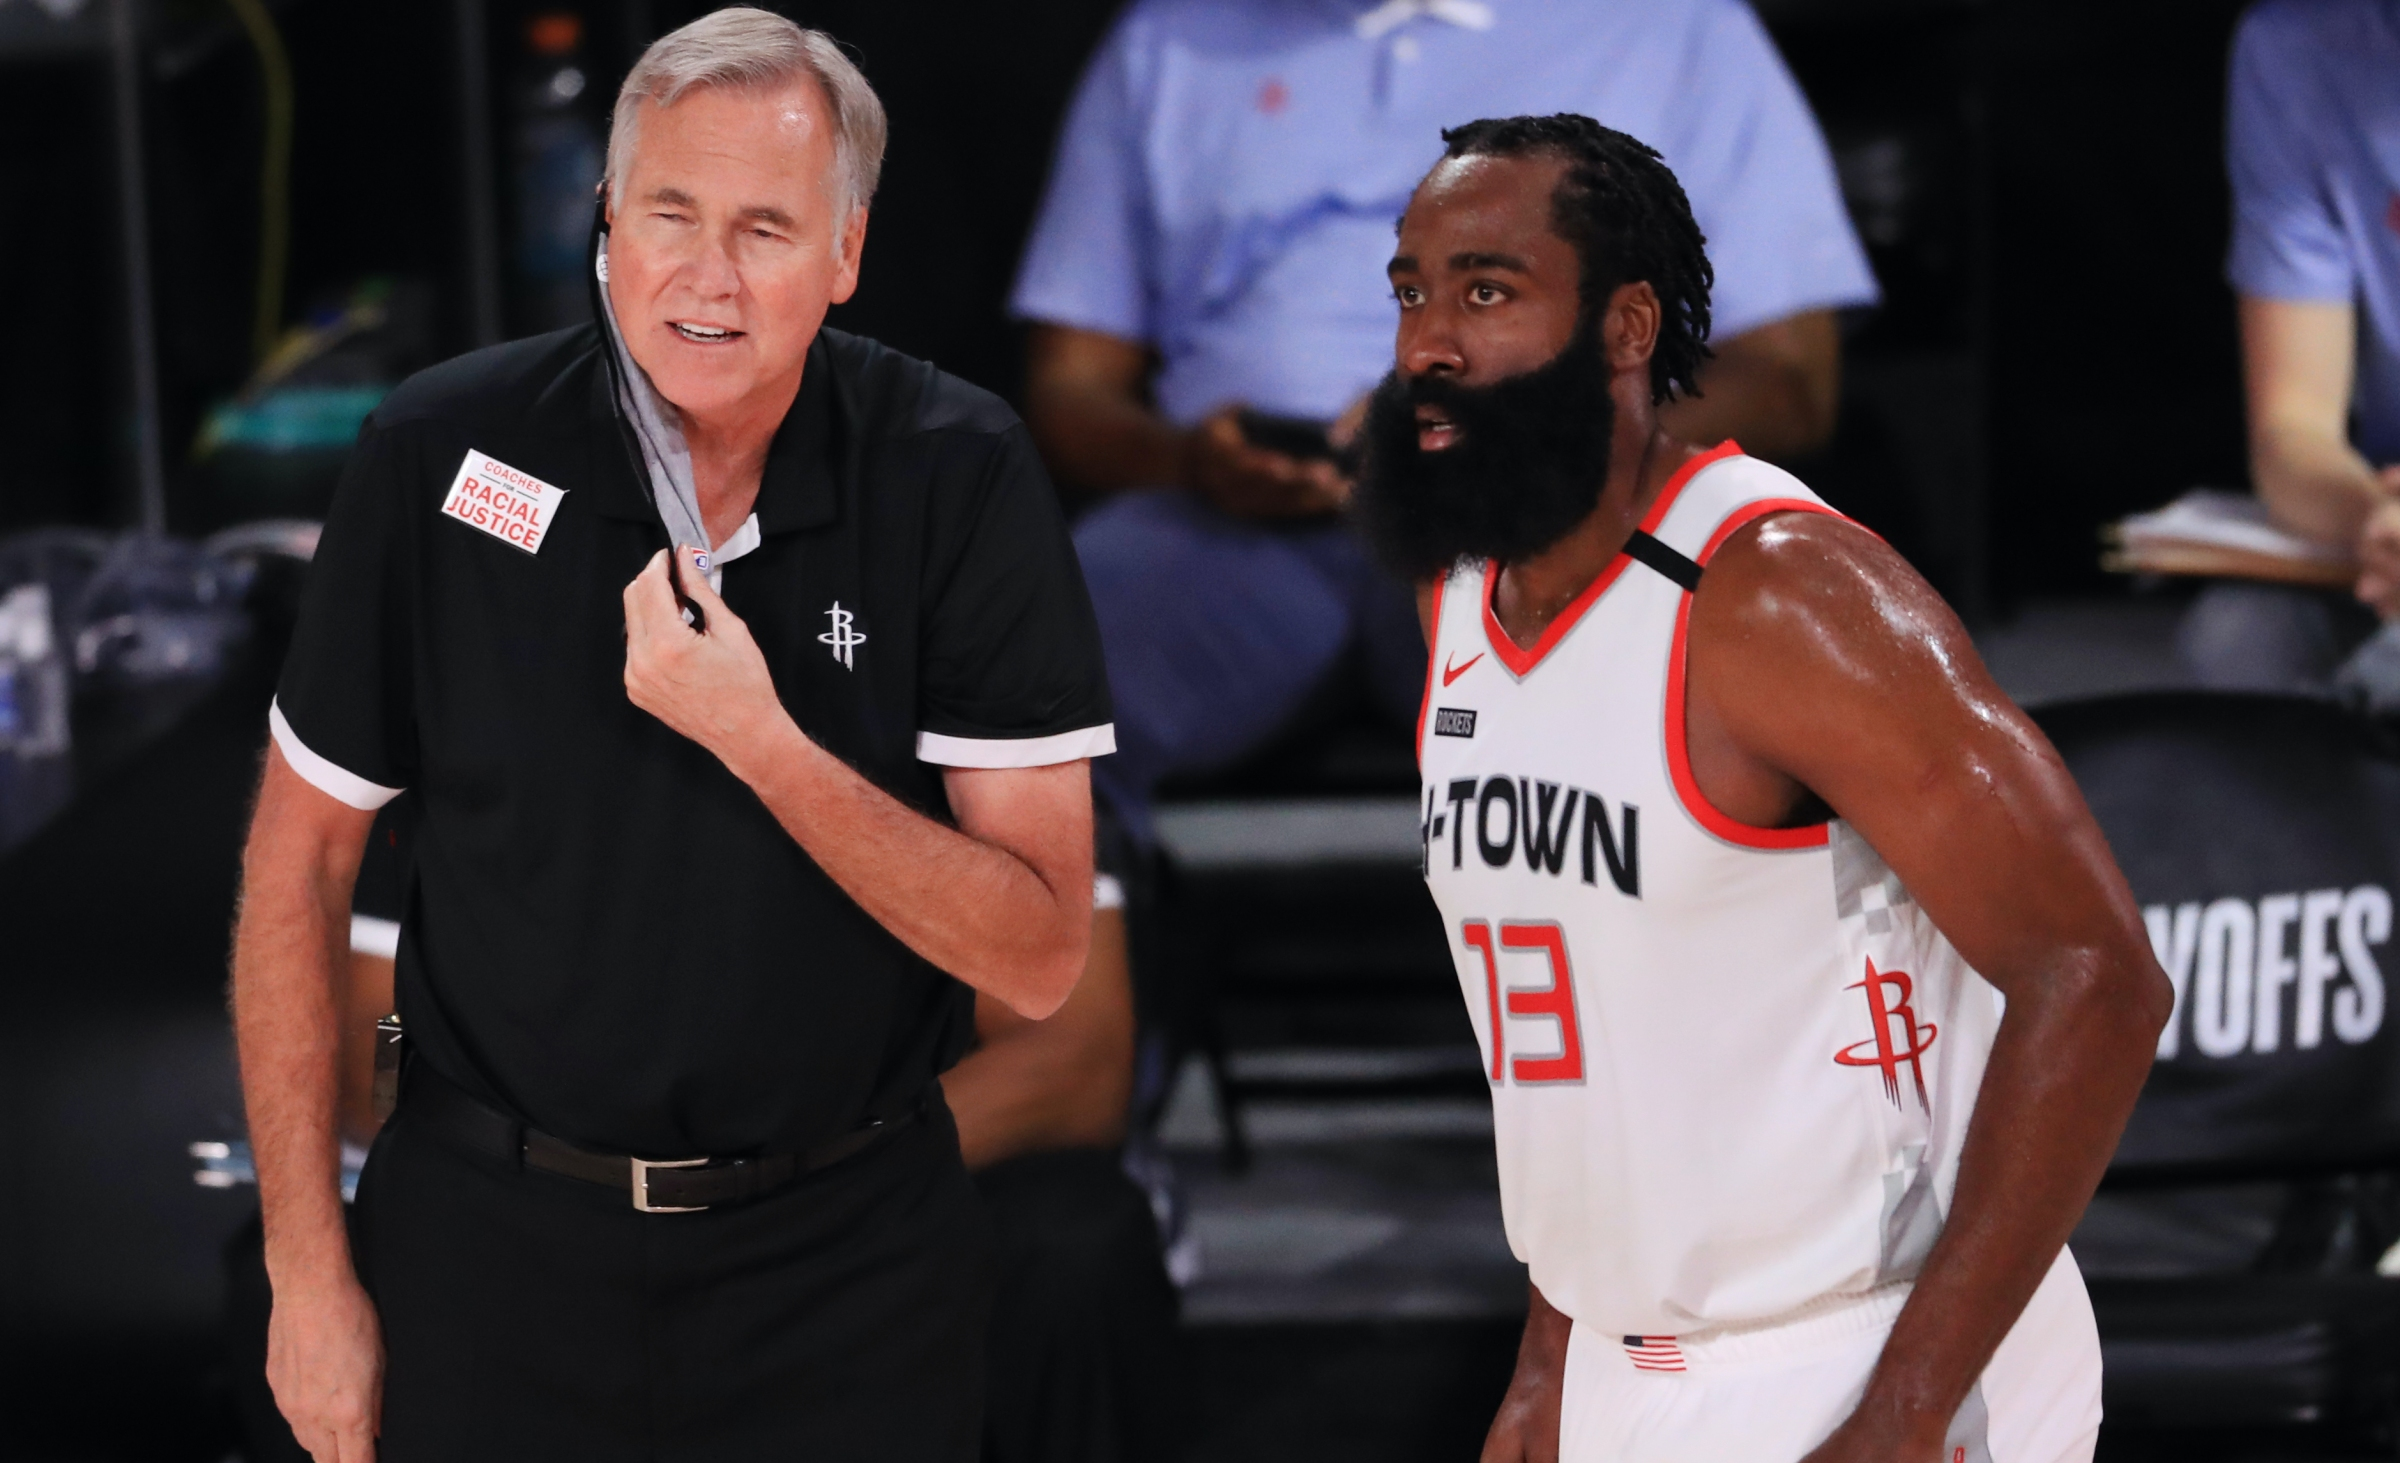 LAKE BUENA VISTA, FLORIDA - SEPTEMBER 04: Mike D'Antoni of the Houston Rockets reacts to James Harden #13 of the Houston Rockets during the second quarter in Game One of the Western Conference Second Round during the 2020 NBA Playoffs at AdventHealth Arena at the ESPN Wide World Of Sports Complex on September 04, 2020 in Lake Buena Vista, Florida. NOTE TO USER: User expressly acknowledges and agrees that, by downloading and or using this photograph, User is consenting to the terms and conditions of the Getty Images License Agreement. (Photo by Mike Ehrmann/Getty Images)